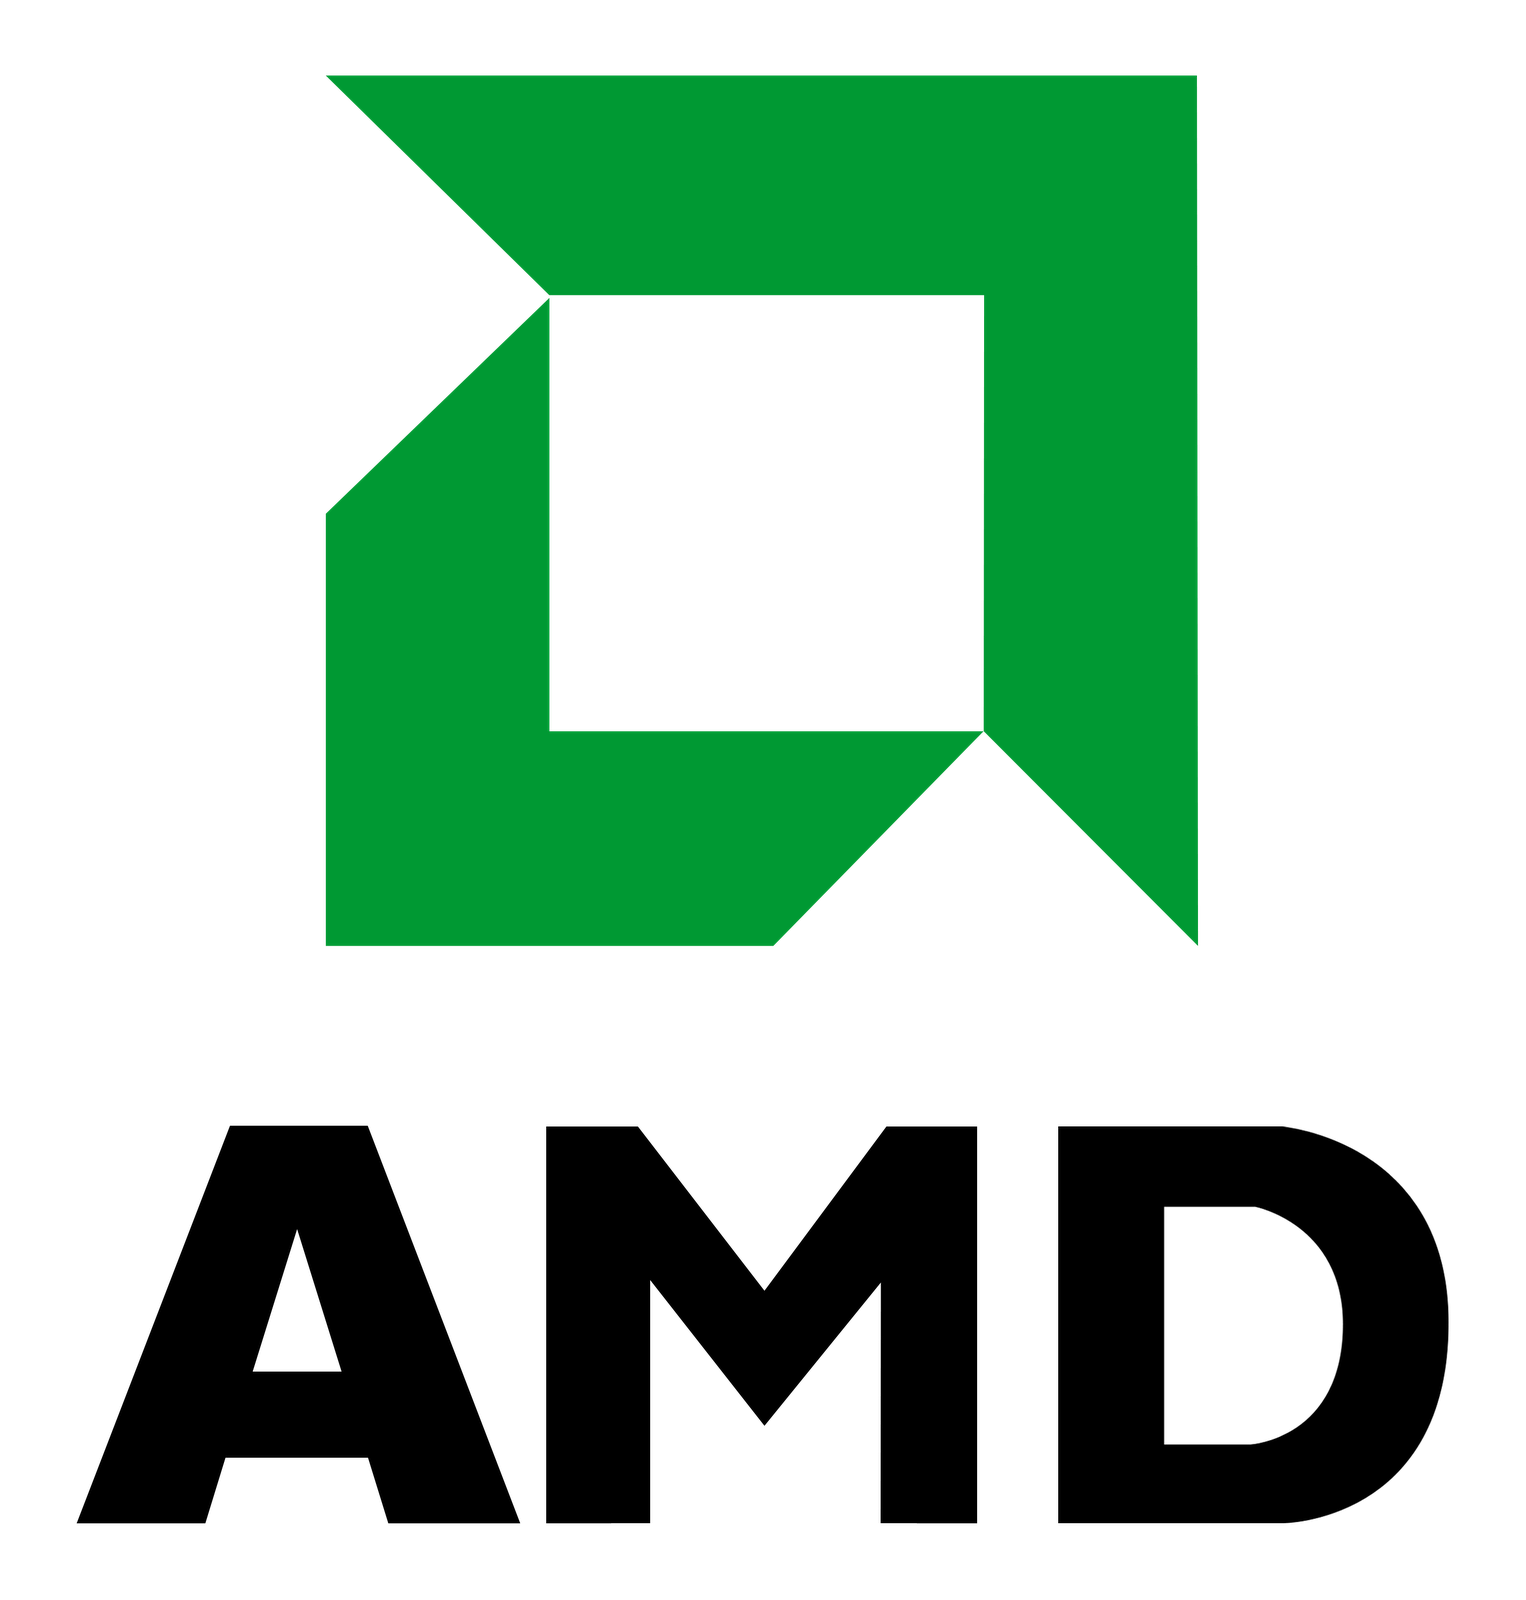 1526x1600 > Amd Wallpapers